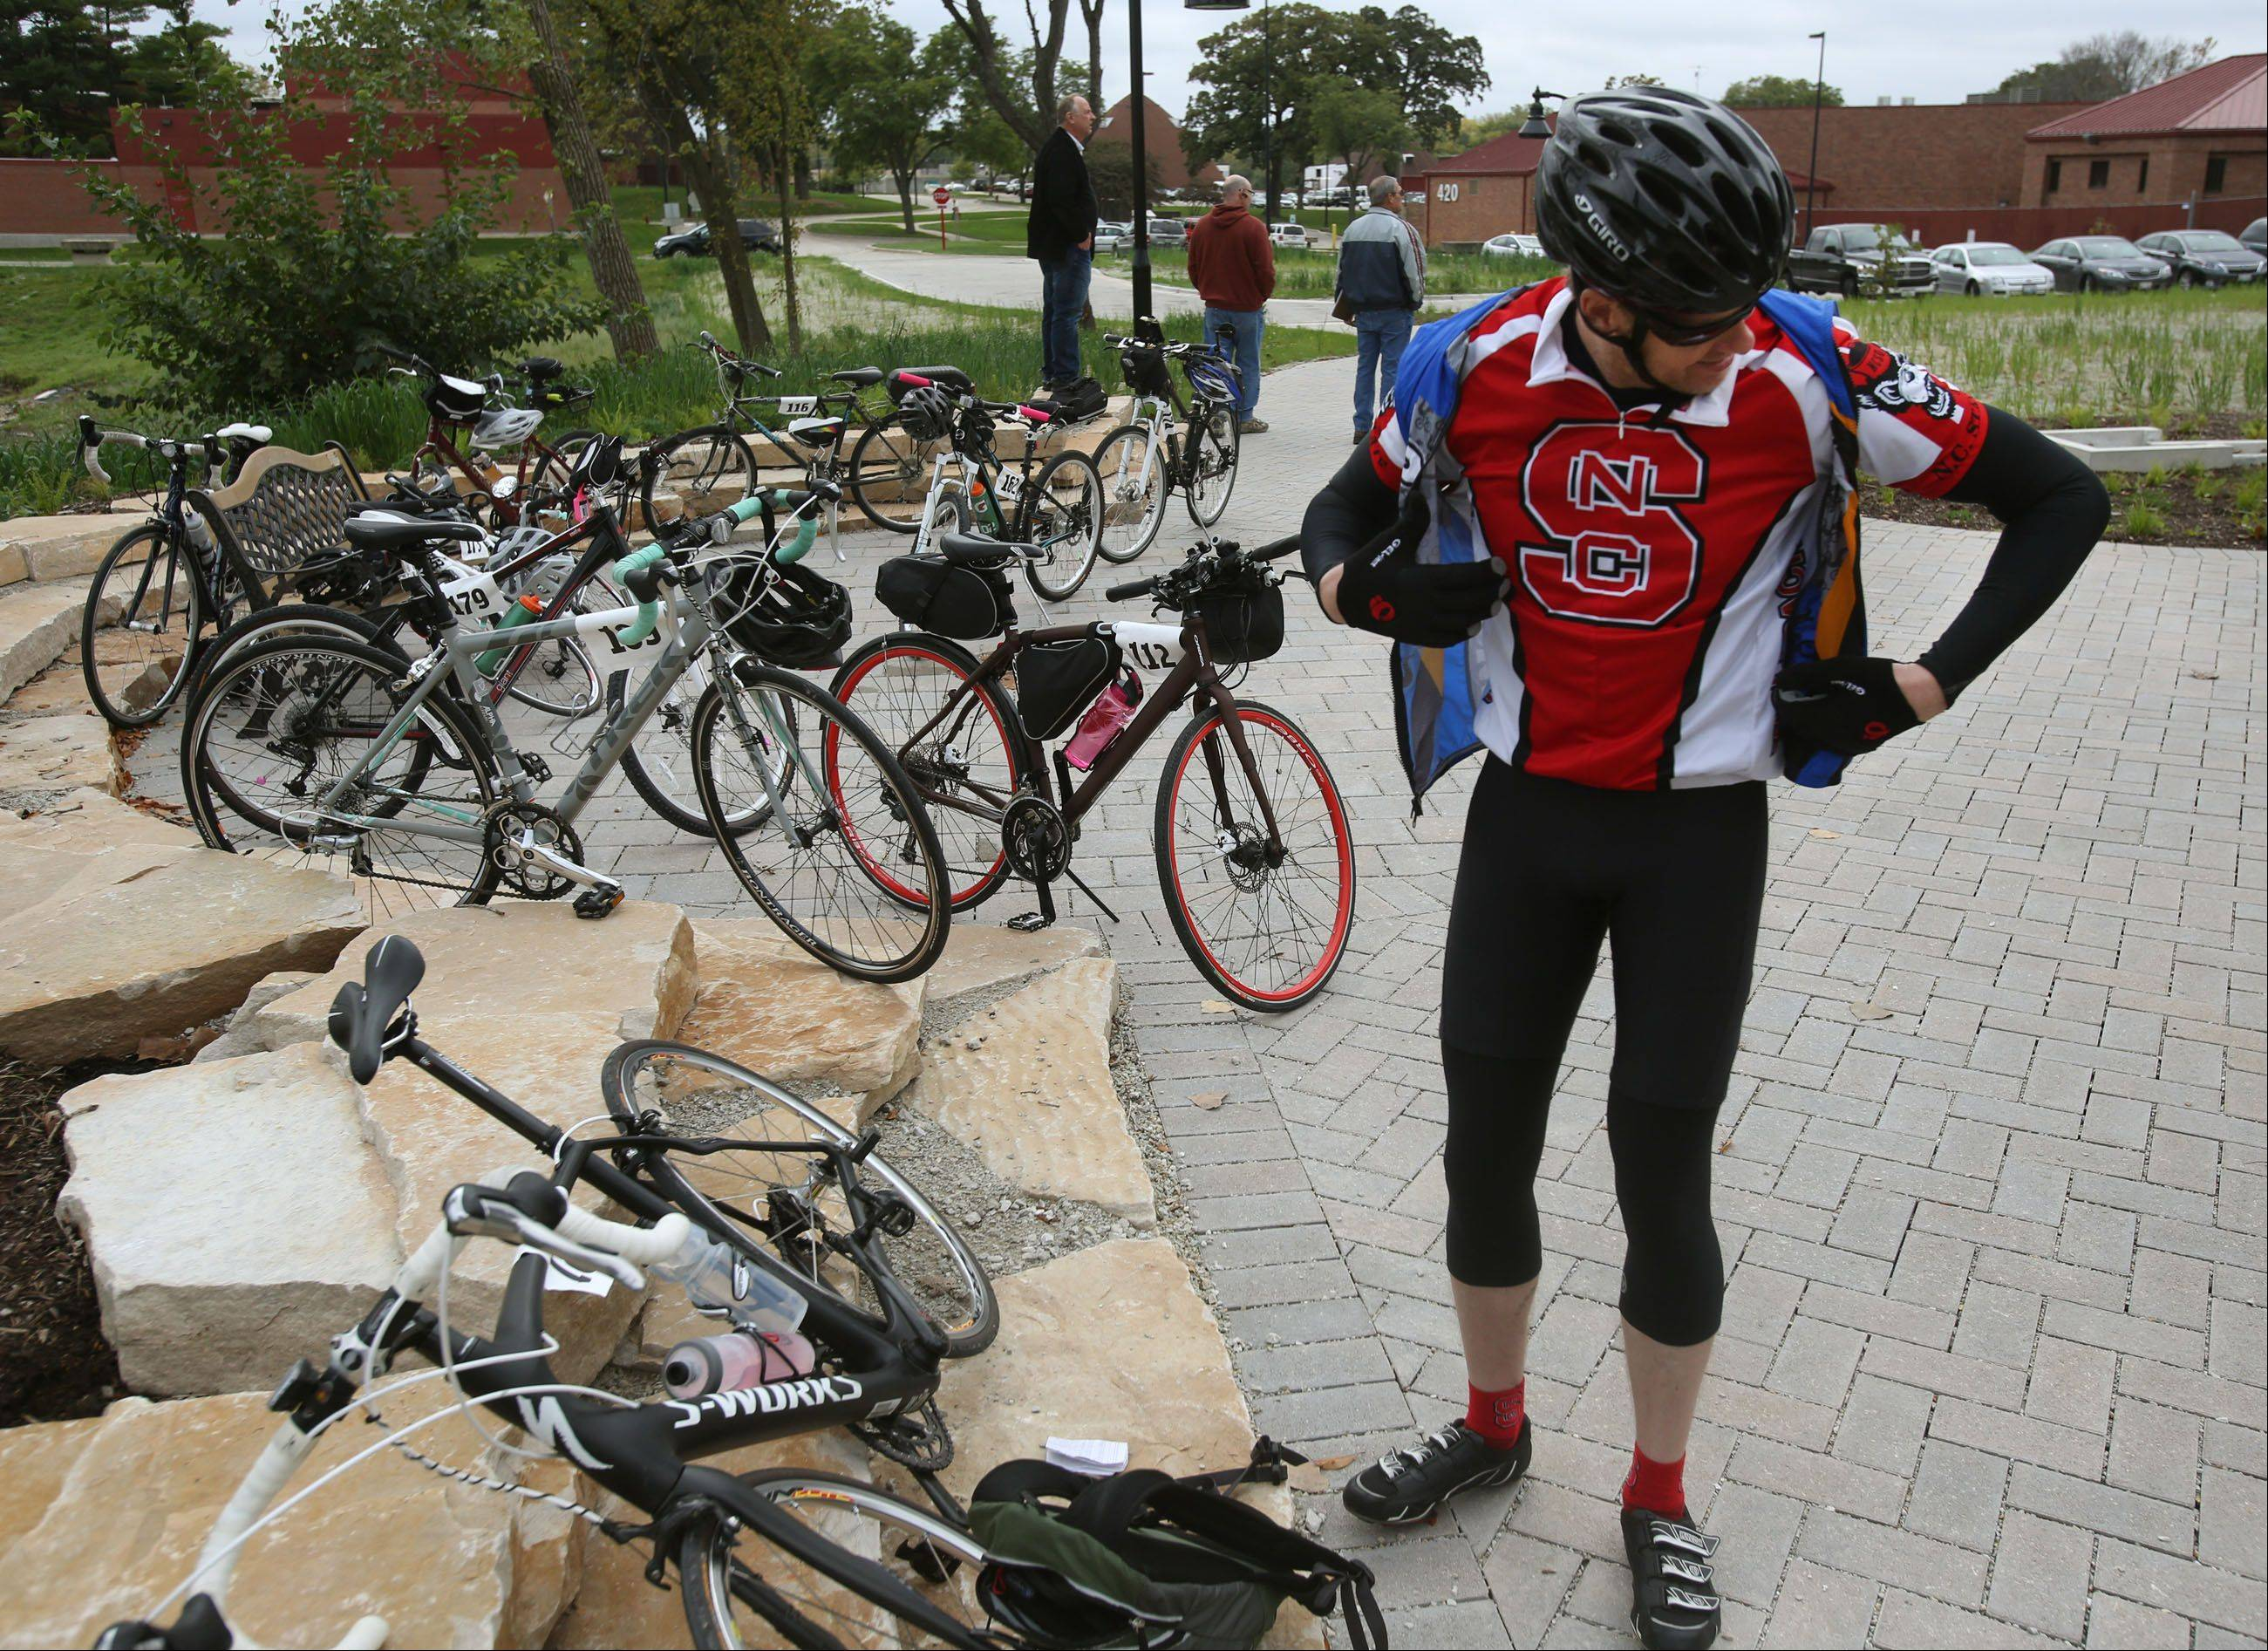 Justin Davis of Schaumburg takes a breather Wednesday during the inaugural Stop the Cycle of Abuse Ride in Wheaton. The 360-mile bike tour aims to raise $150,000 for services benefiting abused children.